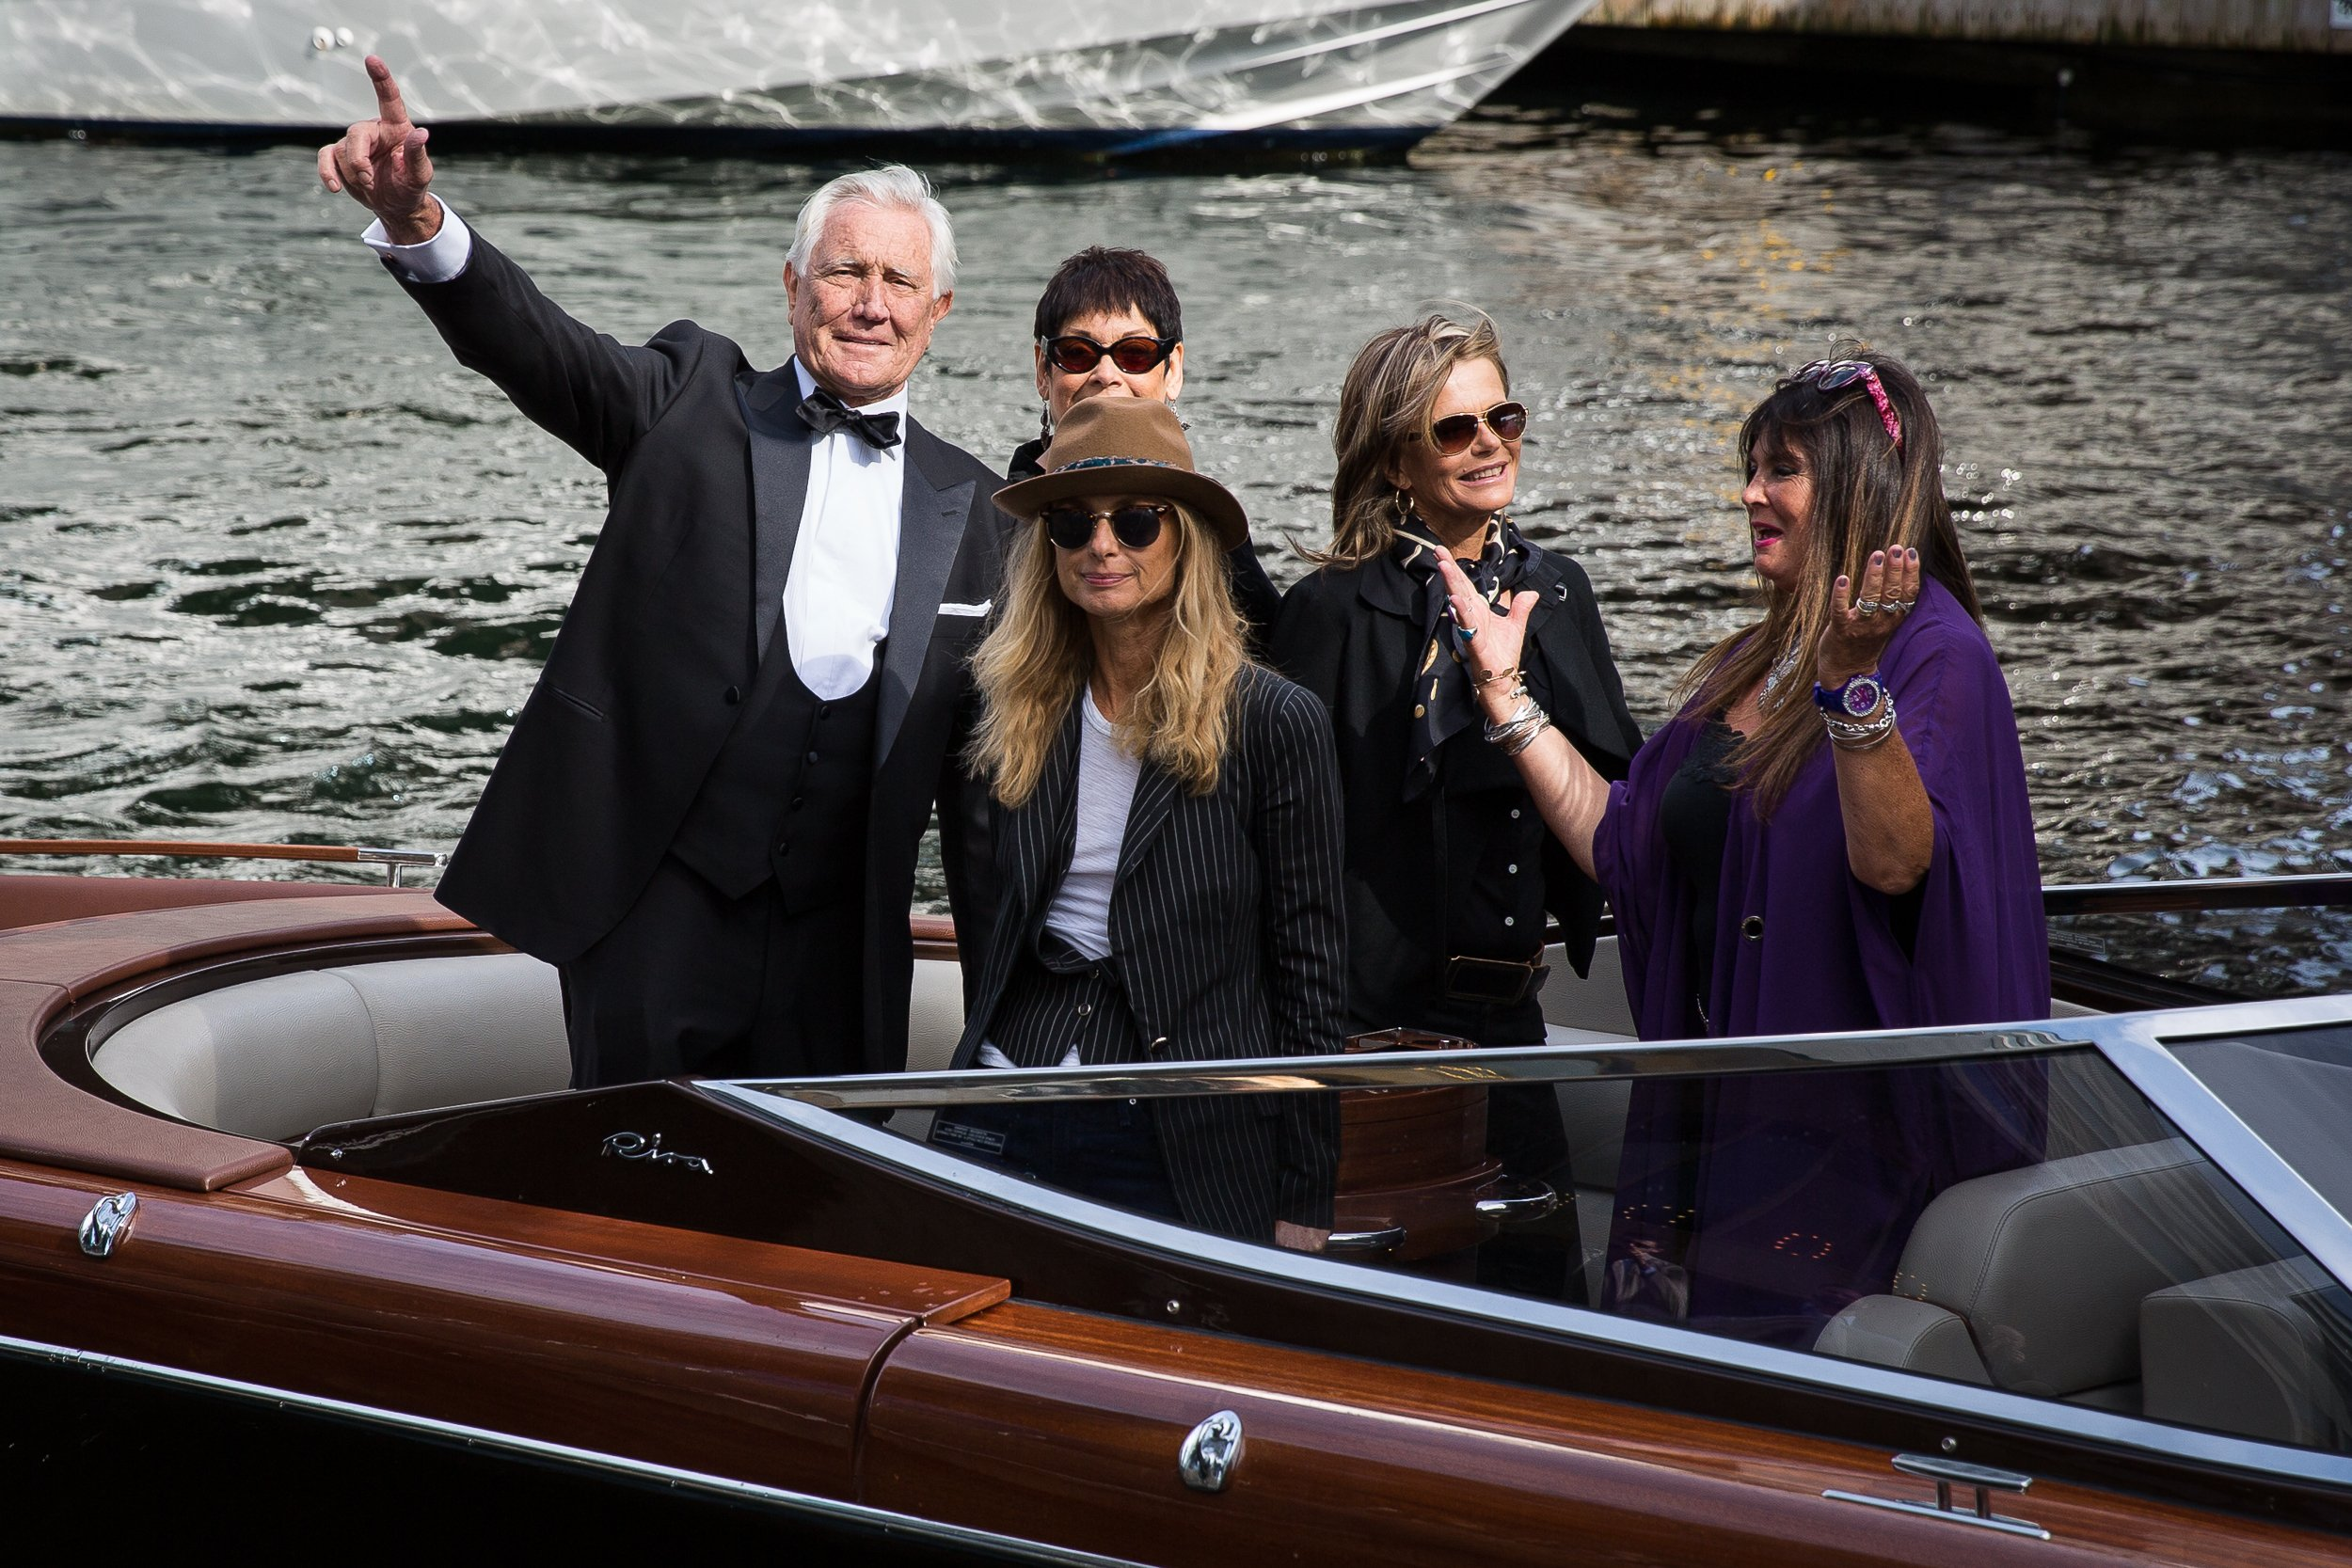 James-Bond-Oslo-George-Lazenby-Girls